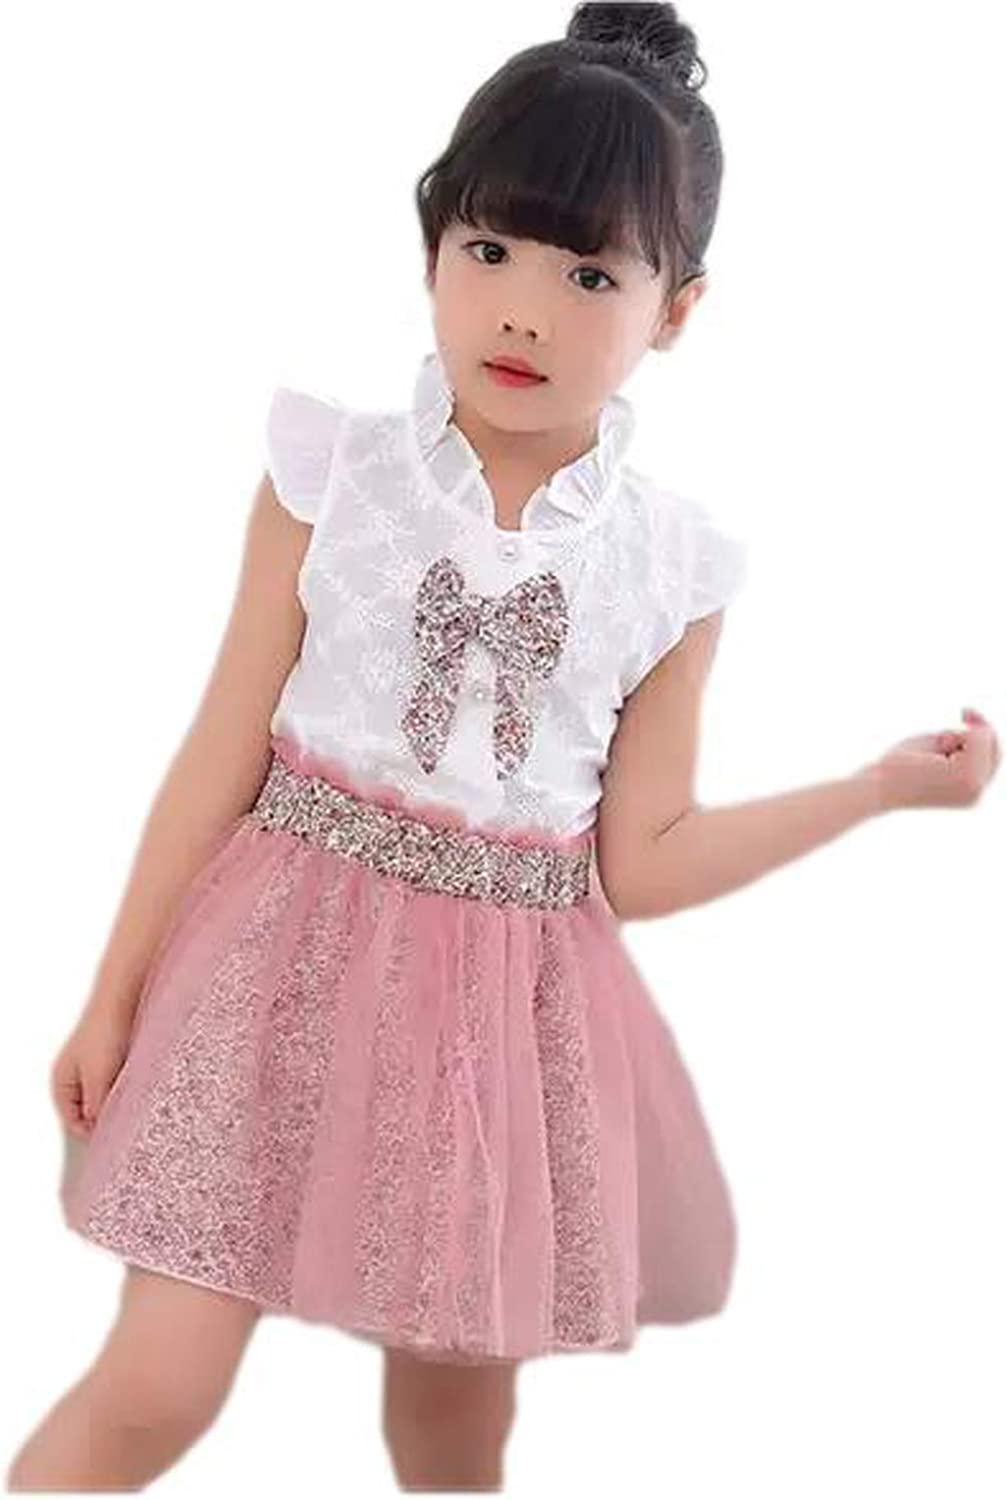 Aianger Toodle Girls Outfits Summer Holiday Sleeveless Ruffle Tank Top and Tutu Floral Skirt Set: Clothing, Shoes & Jewelry